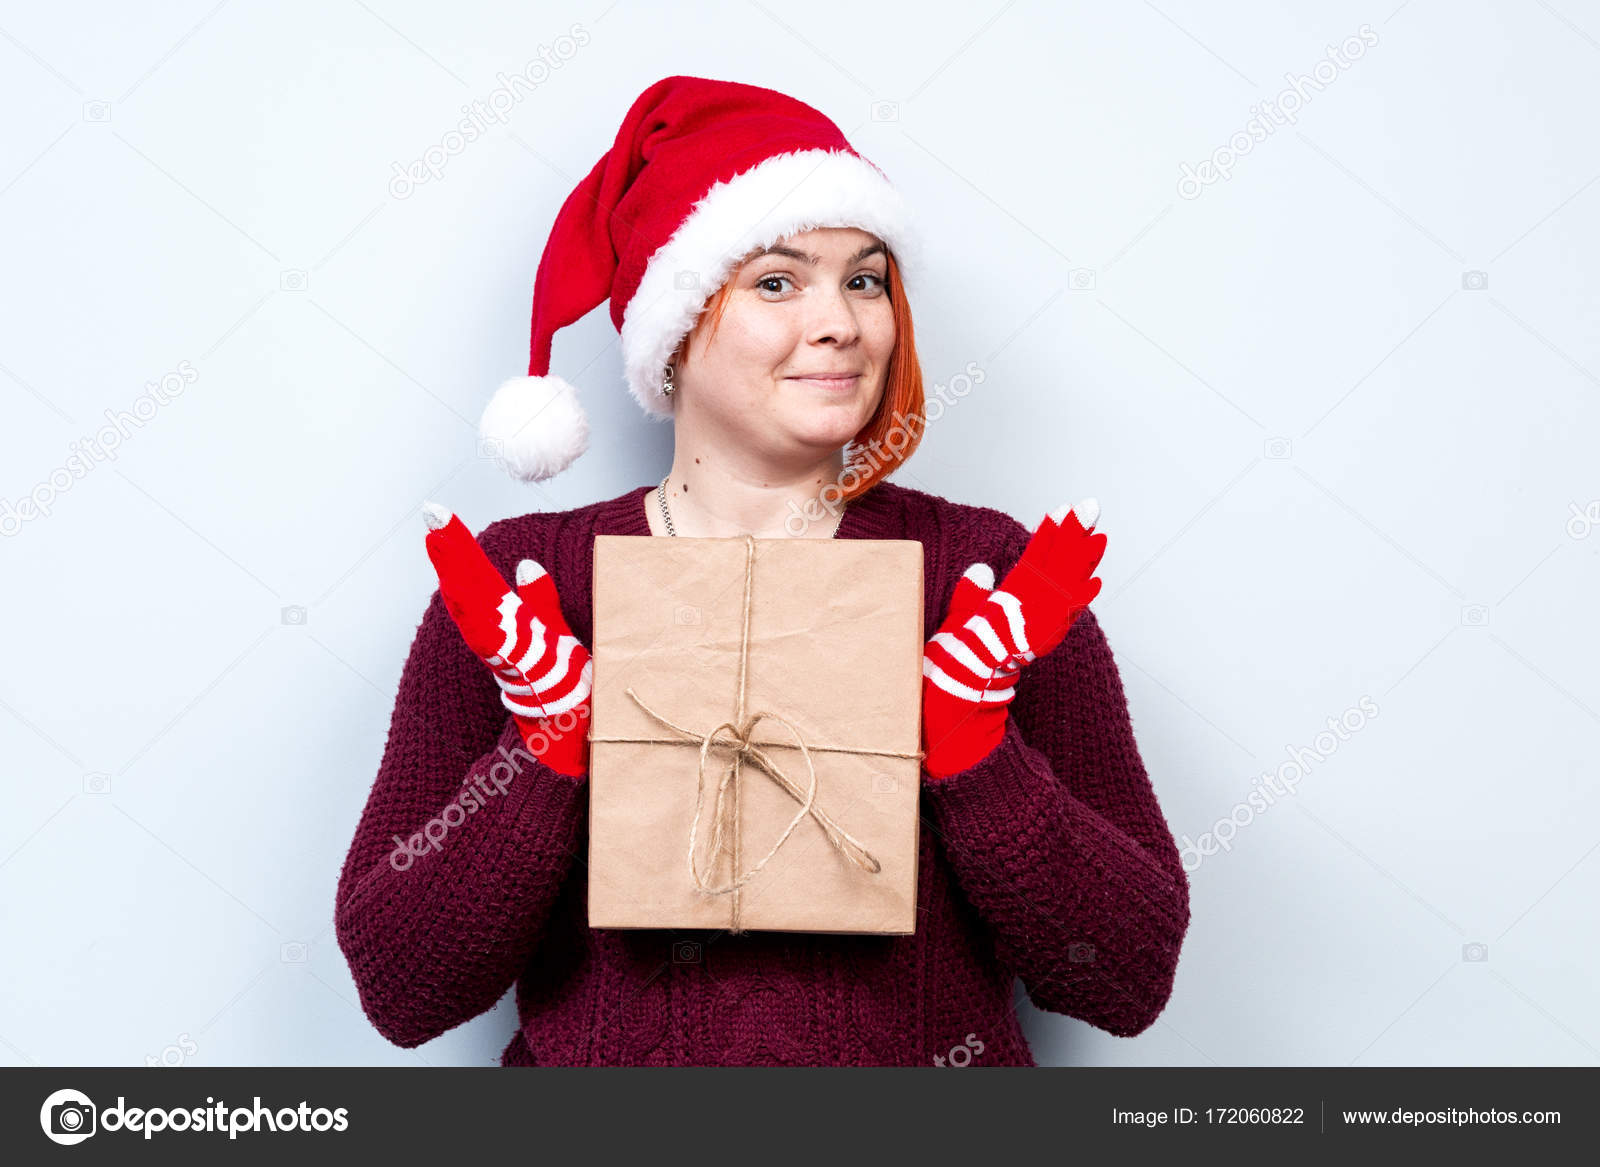 Spirit Of Christmas And New Year Concept Of A Holiday And Days Off A Cool Girl In A Santa Claus Hat Very Beautiful Portrait Of A Woman With A Gift